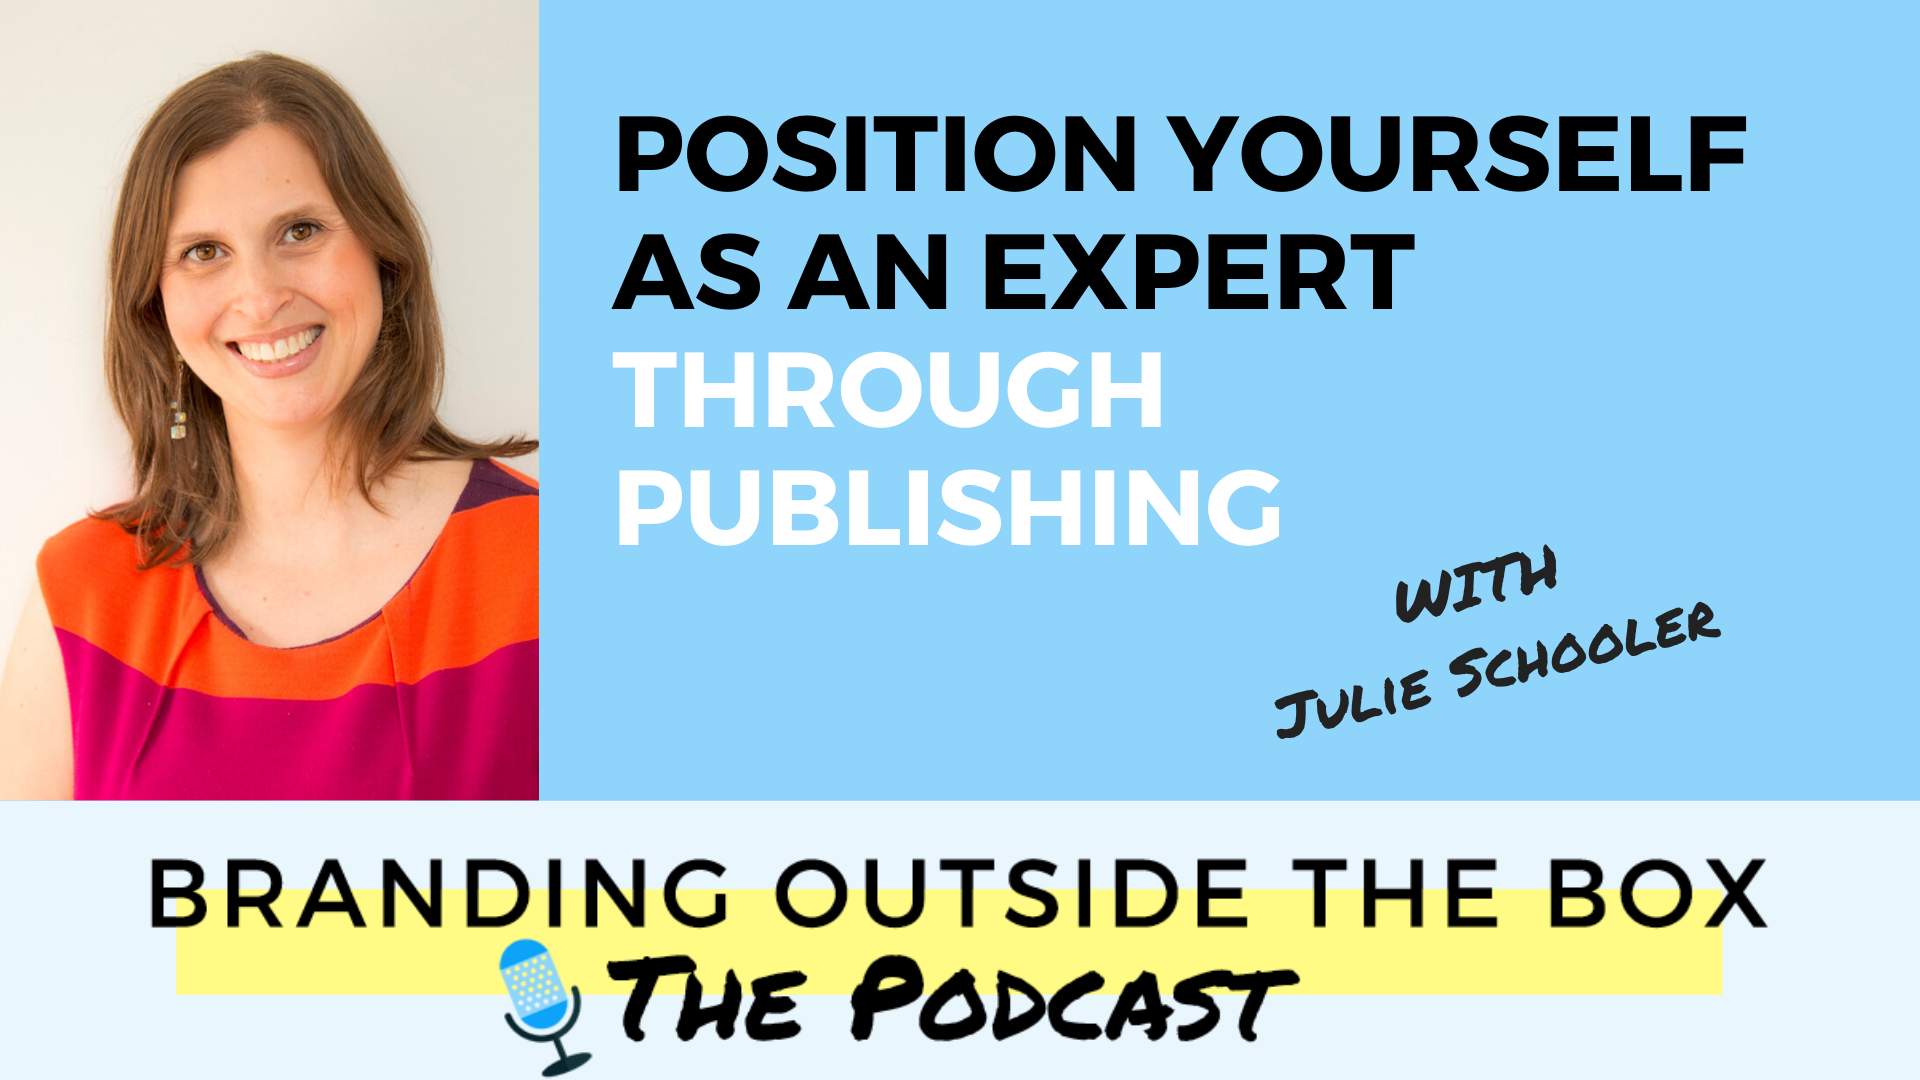 Positioning Yourself as an Expert Through Publishing